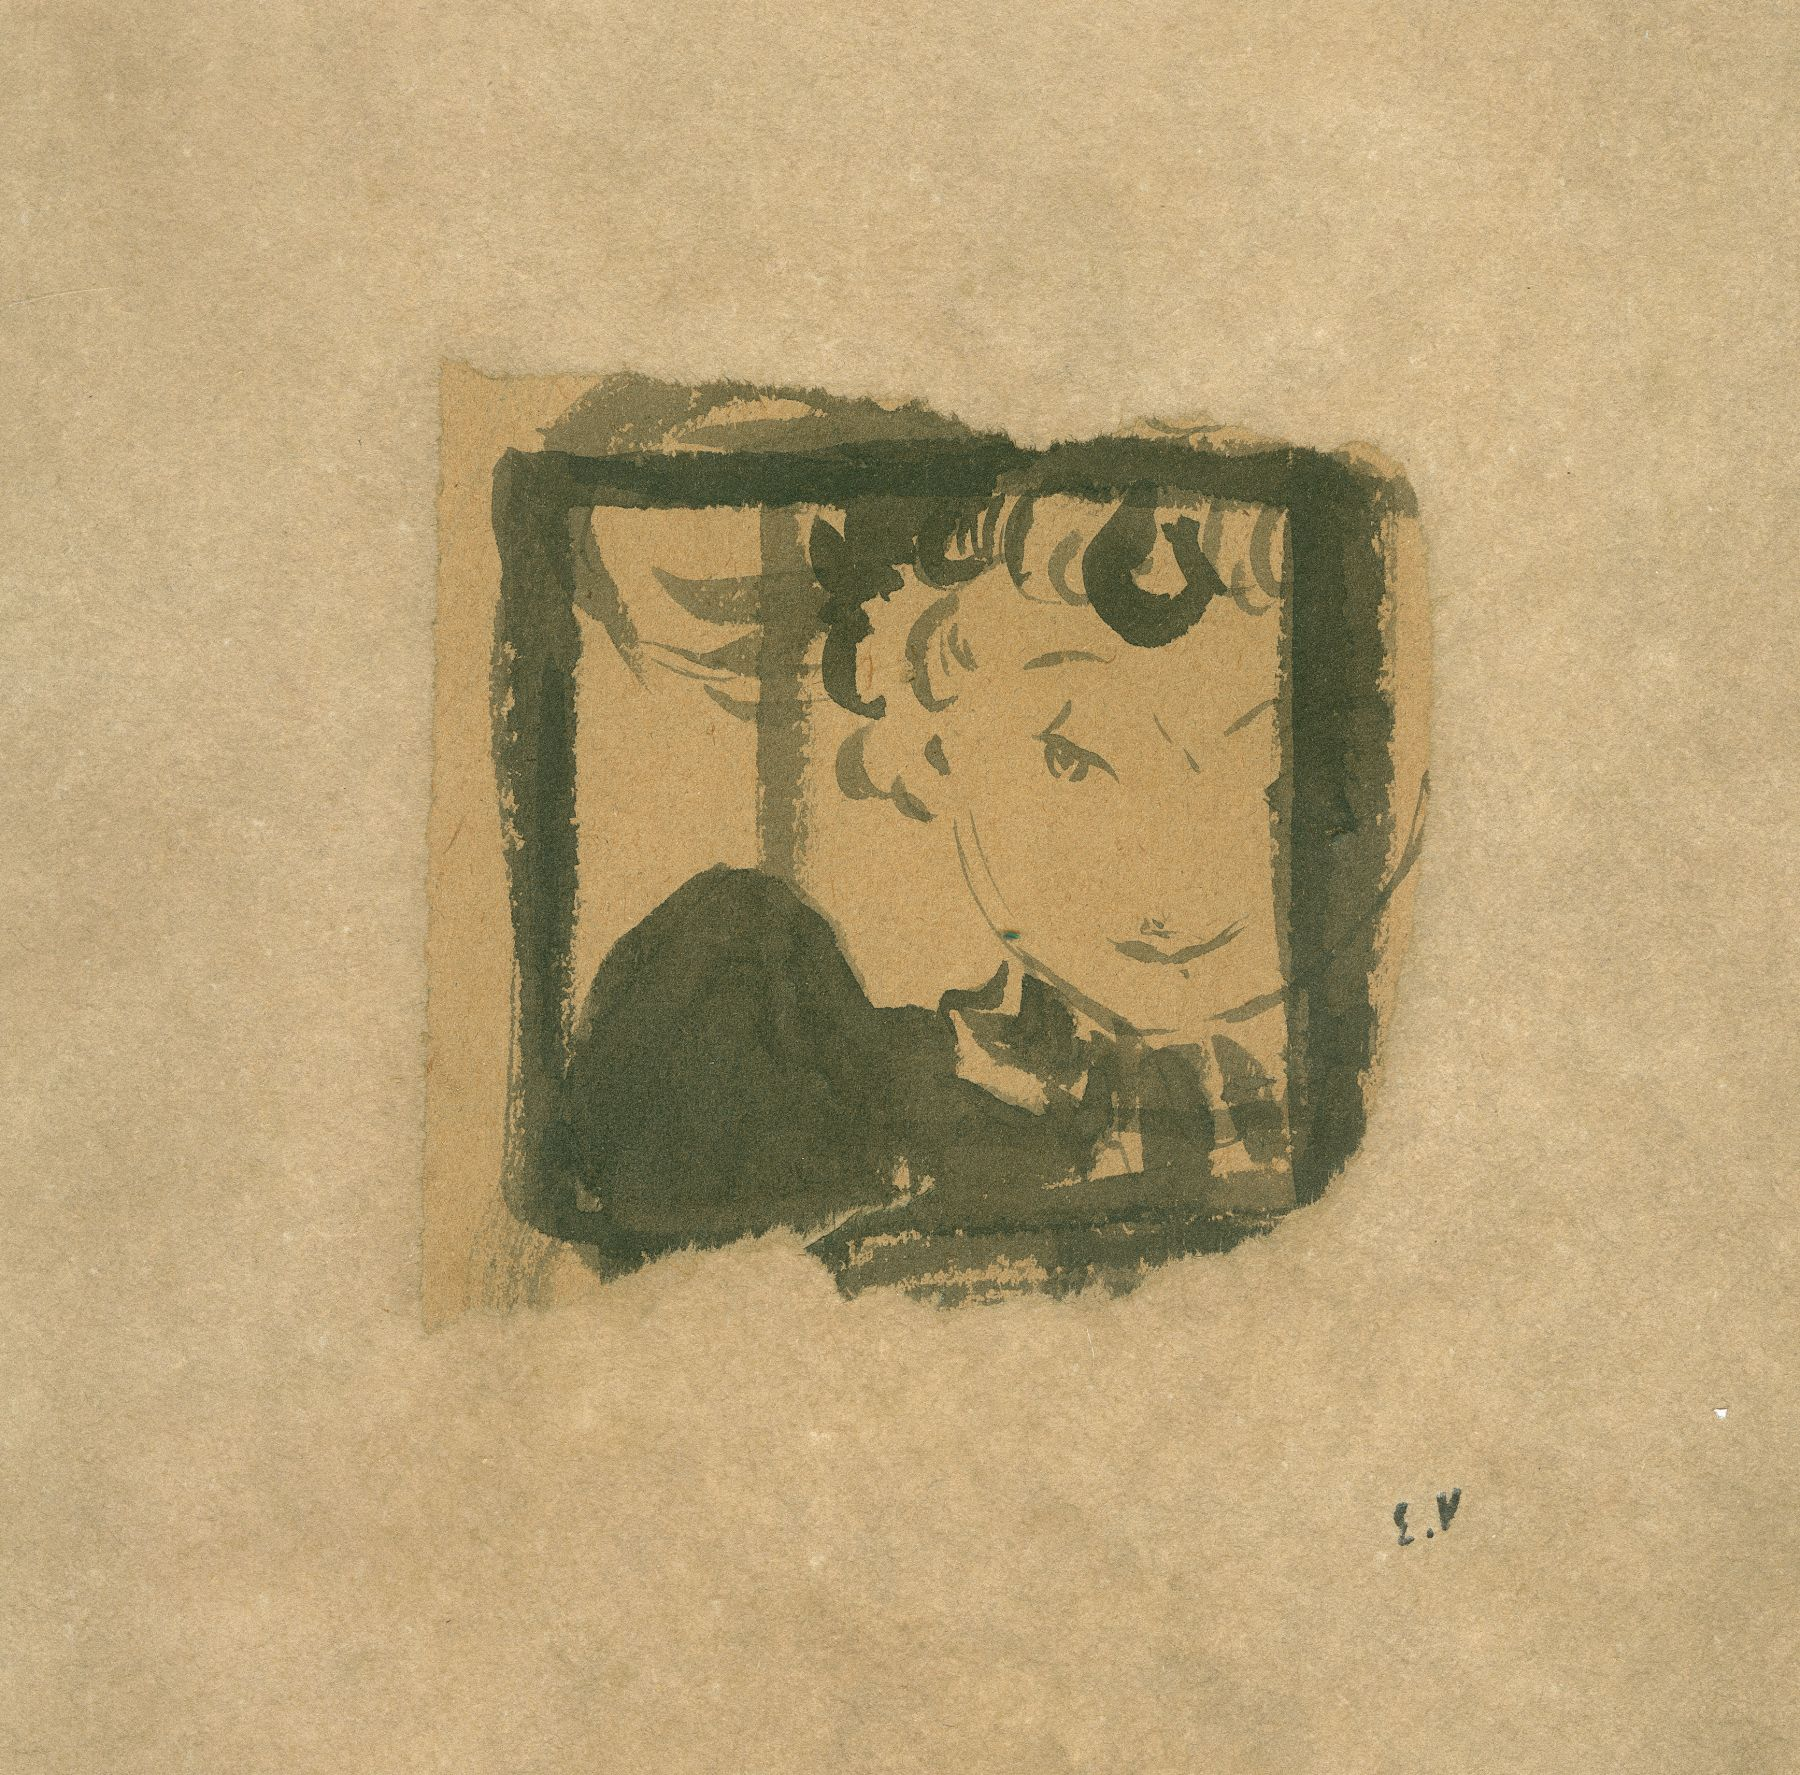 Edouard Vuillard  Marie at the Window, c. 1890  Brush and ink on paper  3 x 3 1/4 inches